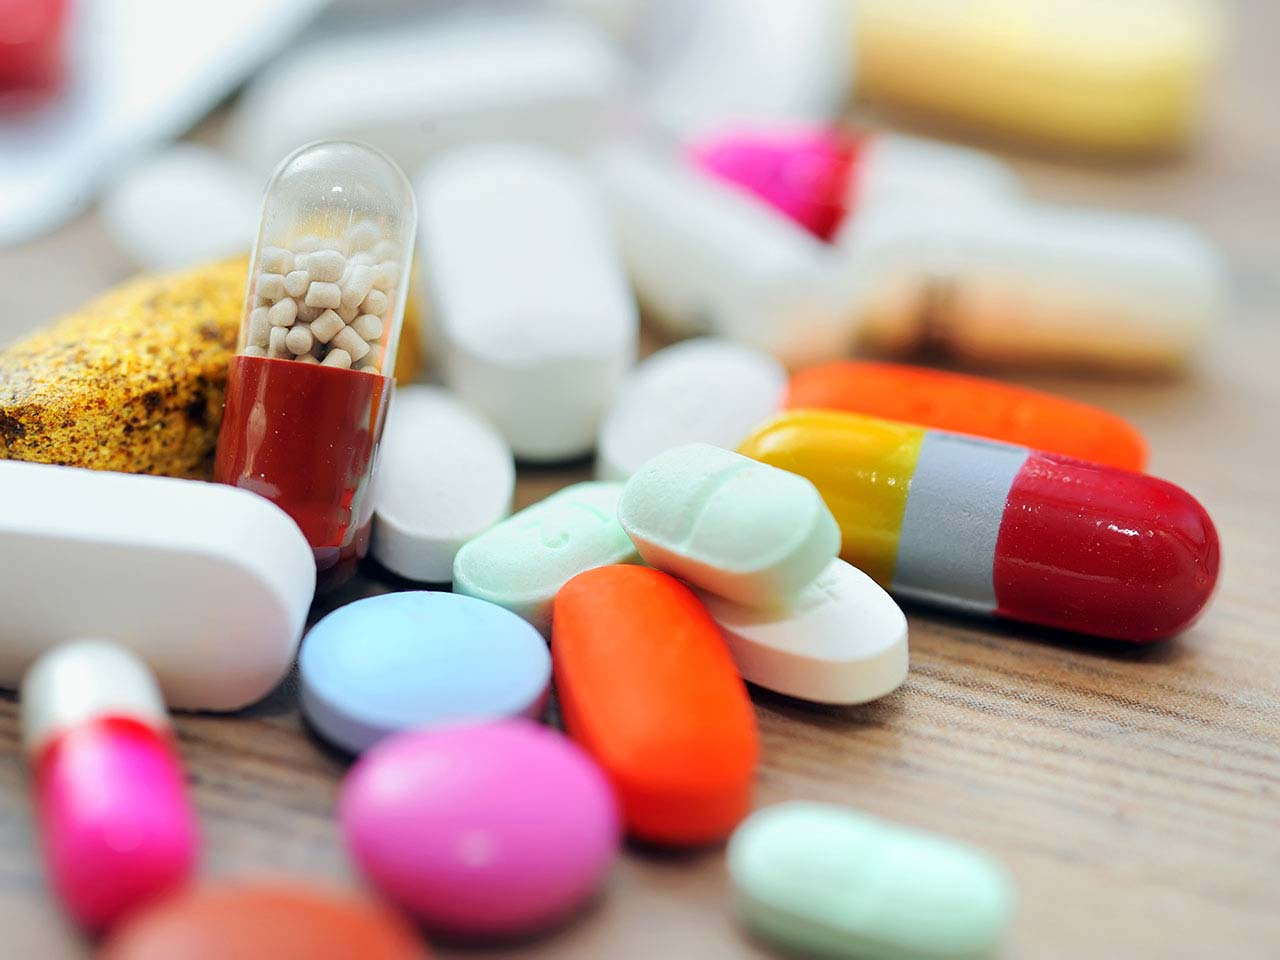 The Market Trends of Indian Pharmaceutical Sector by 2020